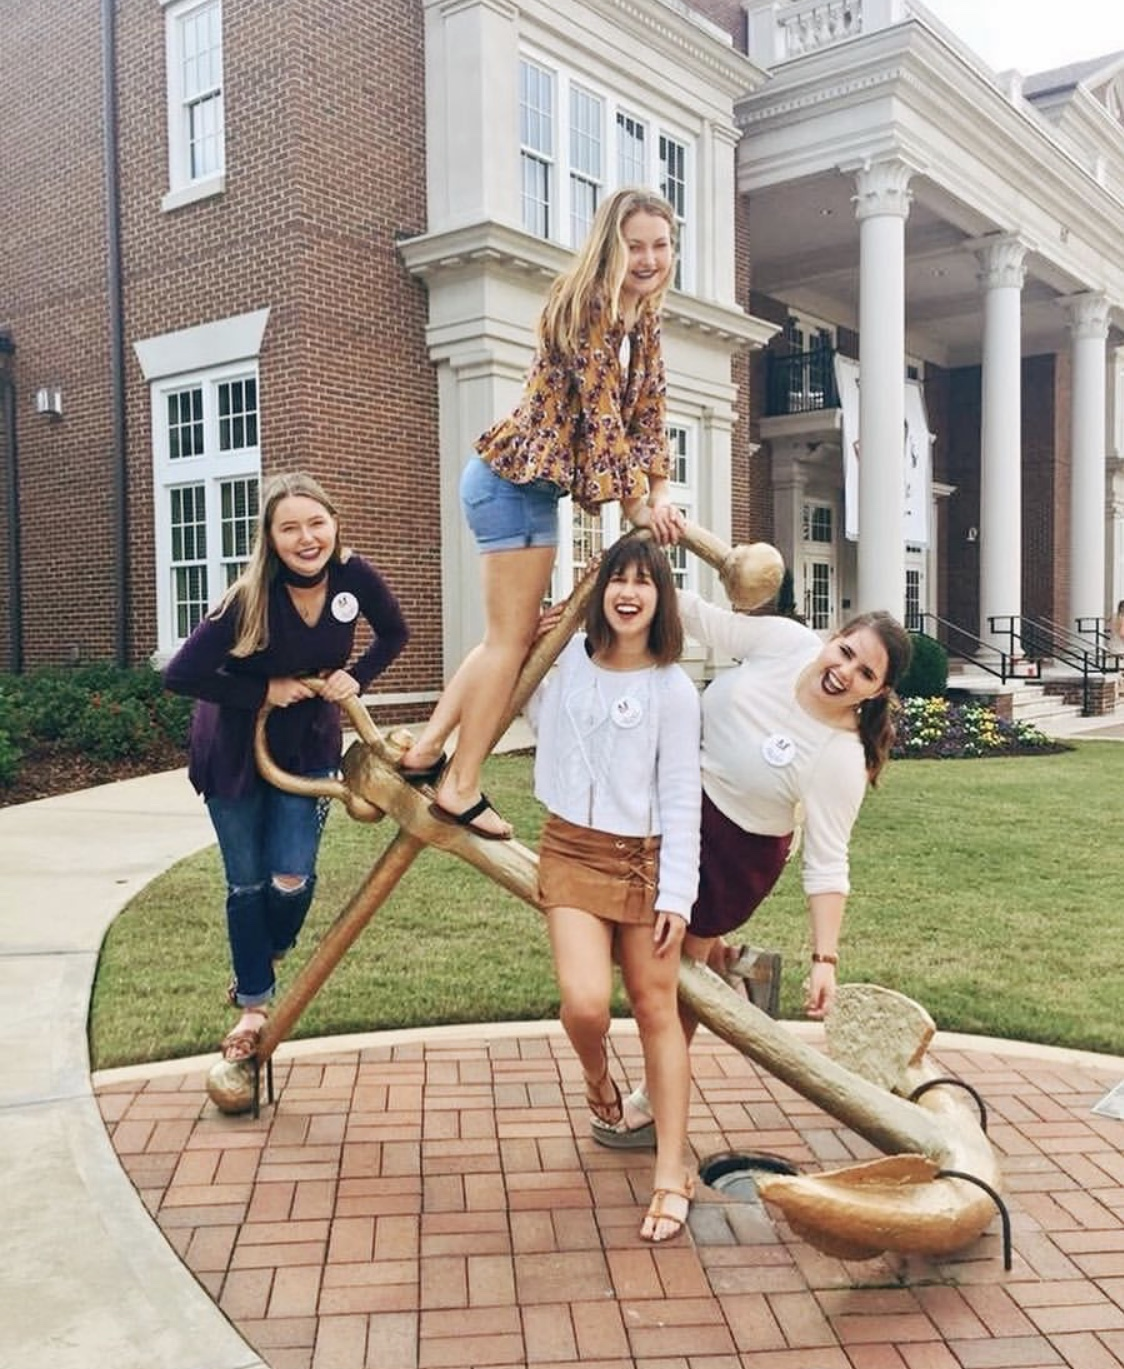 [Photo Description: From left to right, Kelsi, Amber, Lisa, and Merritt pose atop the golden anchor at the University of Alabama.]